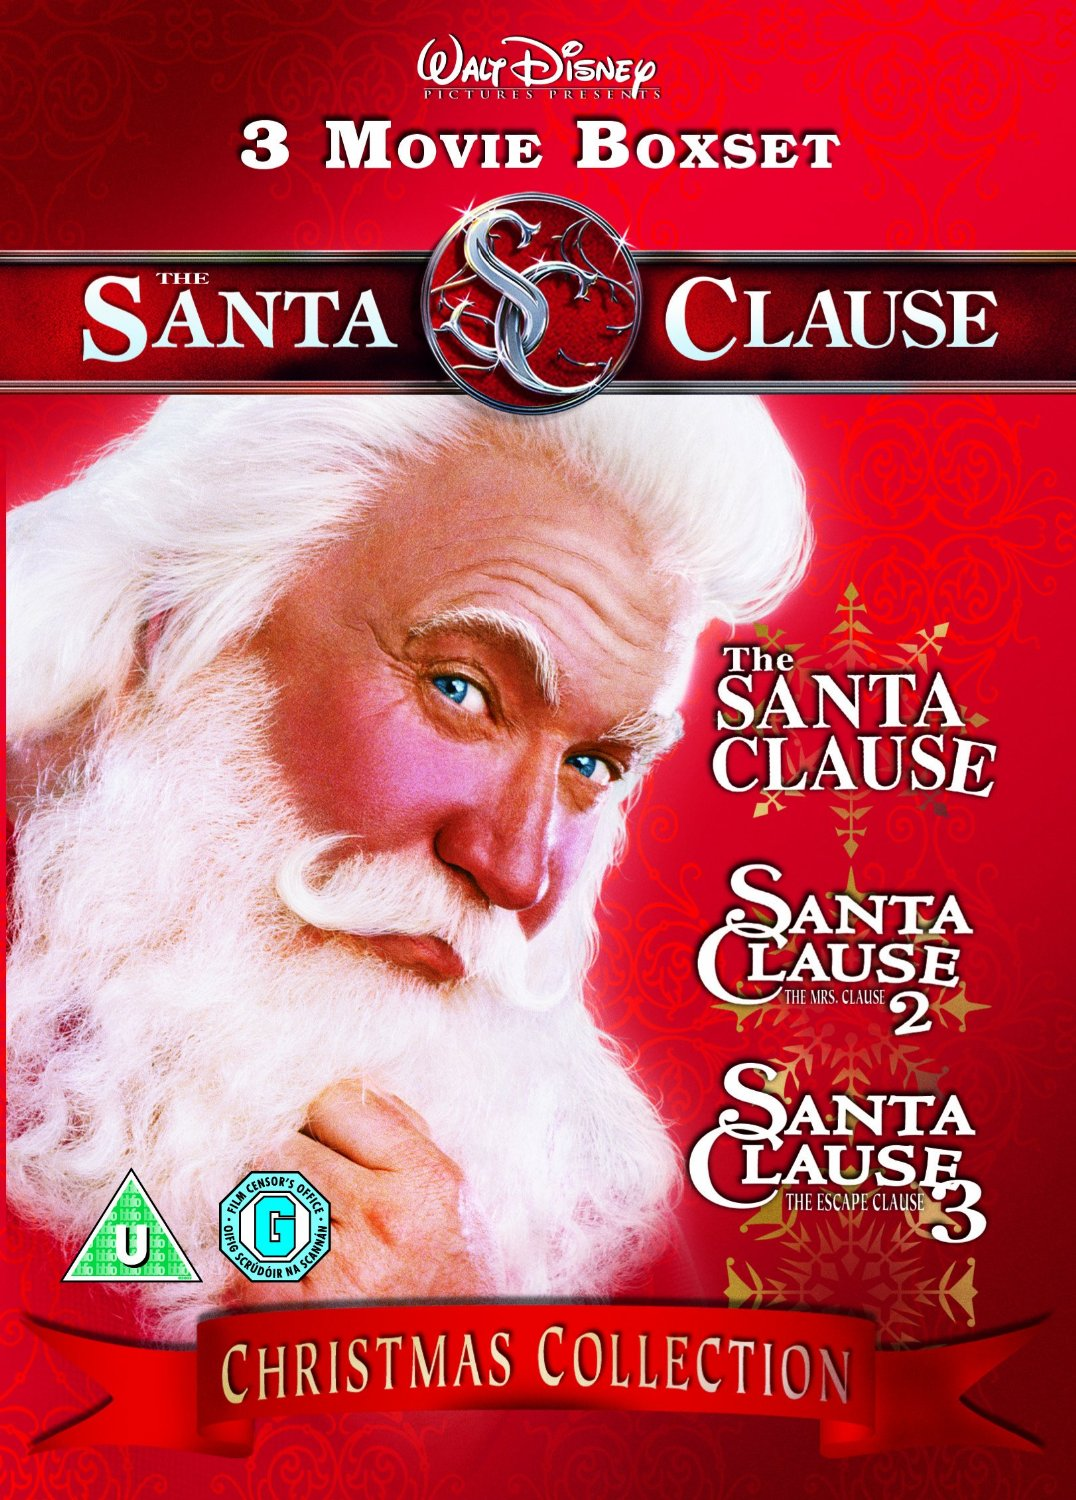 the santa clause christmas collection ukimport